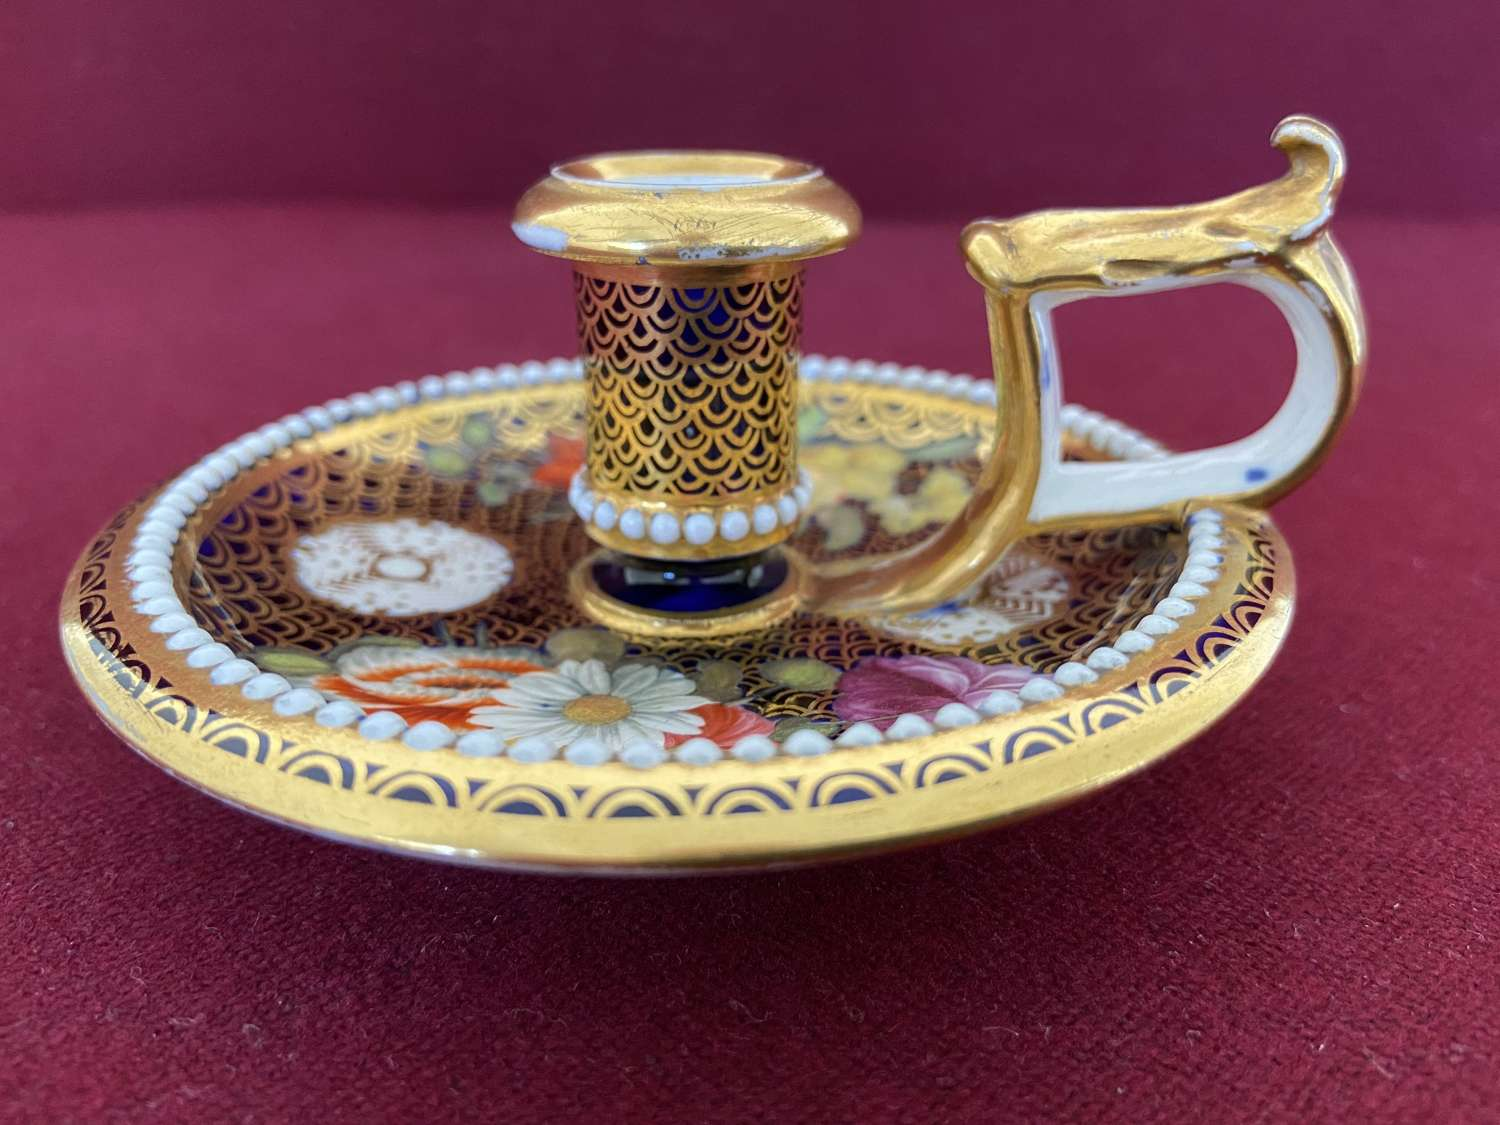 A Spode Candlestick c.1820 decorated in pattern 1166